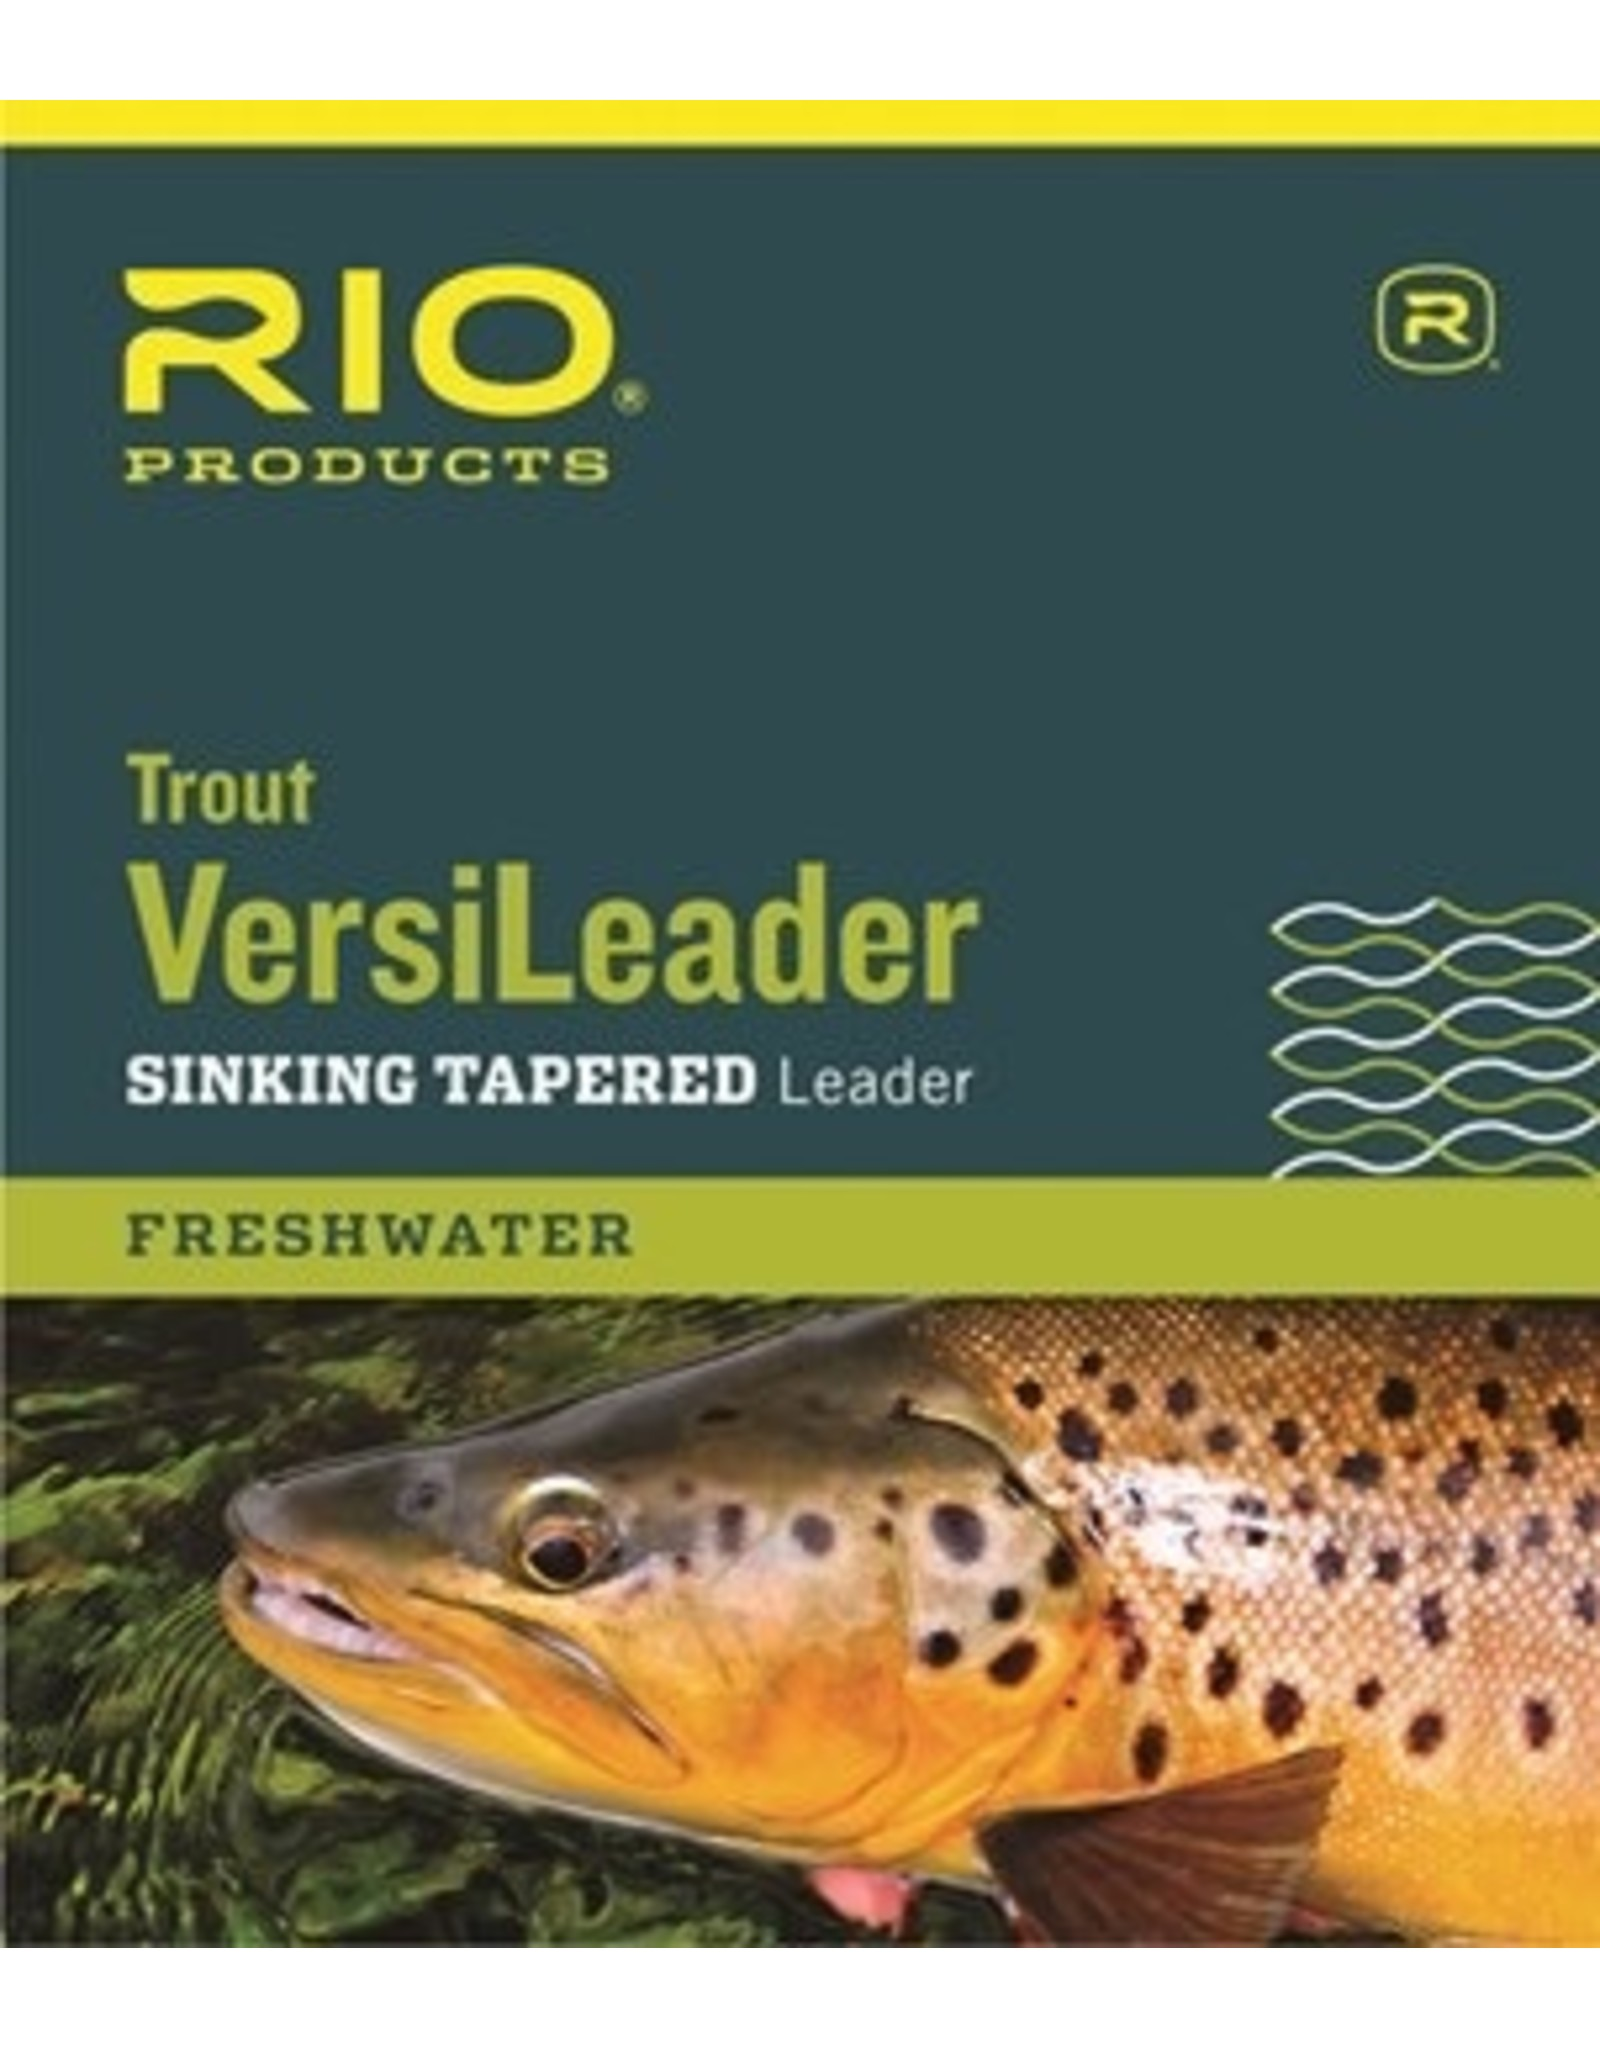 Rio Trout VersiLeader Sinking Tapered 12' 3ips 12lb